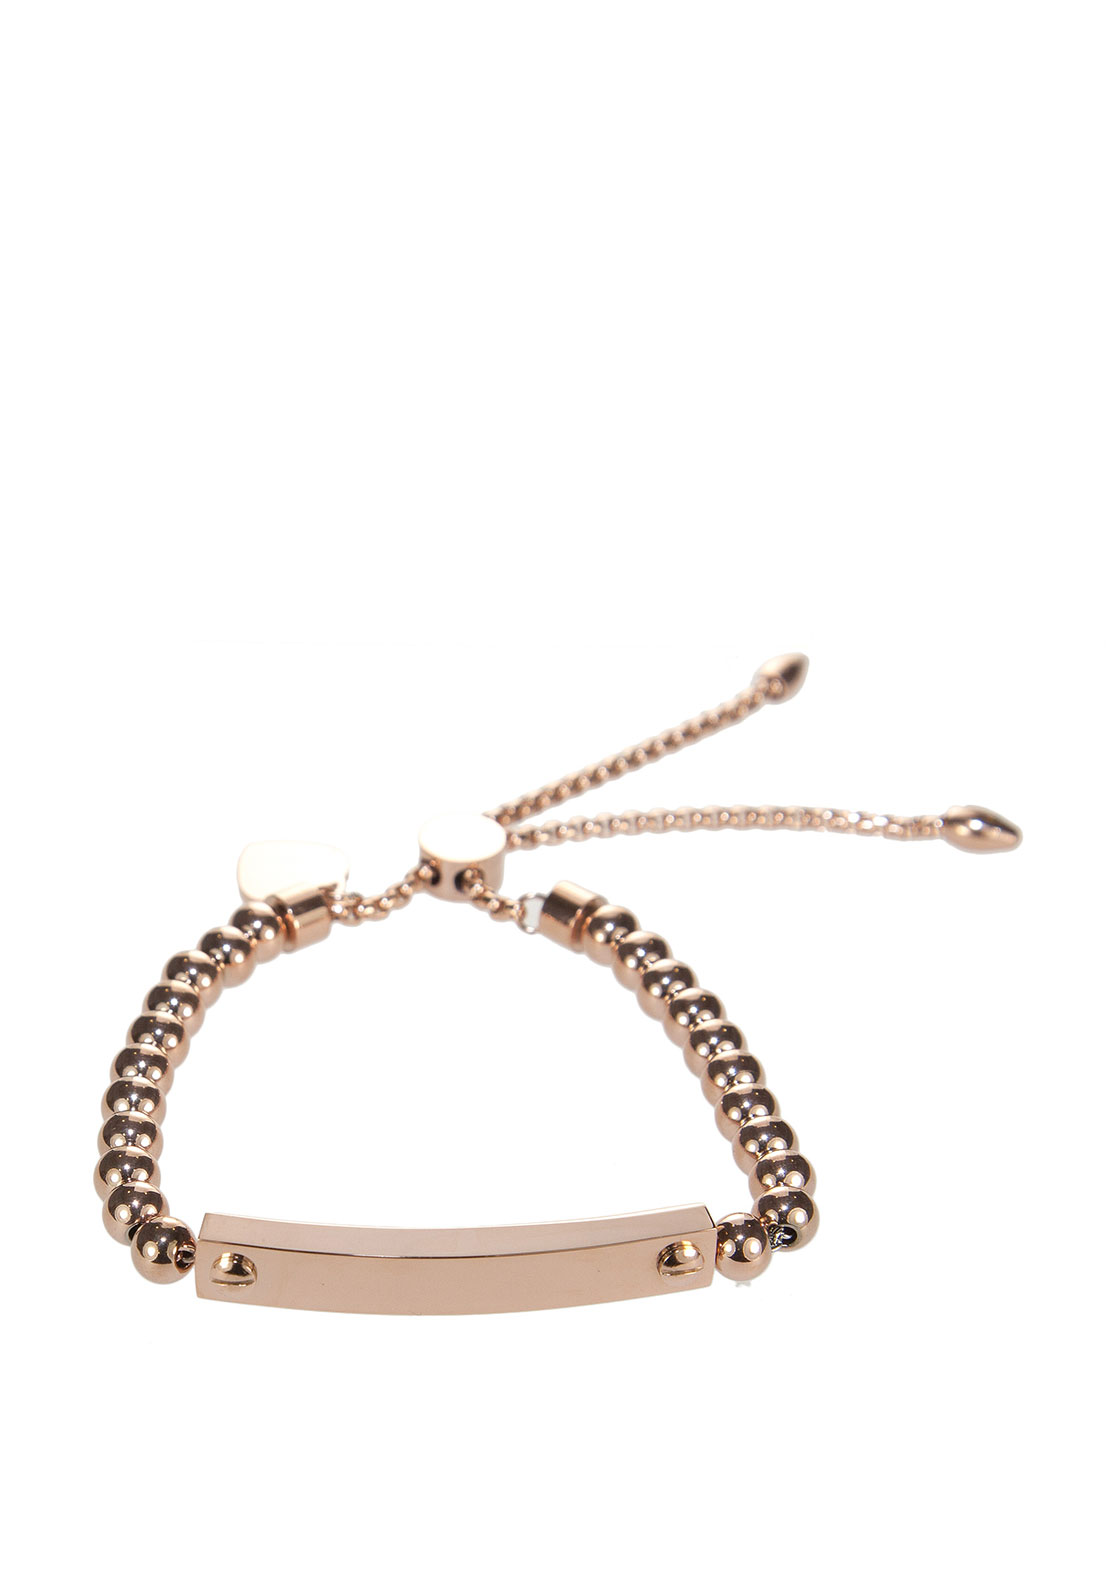 Absolute Tennis Slider Bracelet, Rose Gold